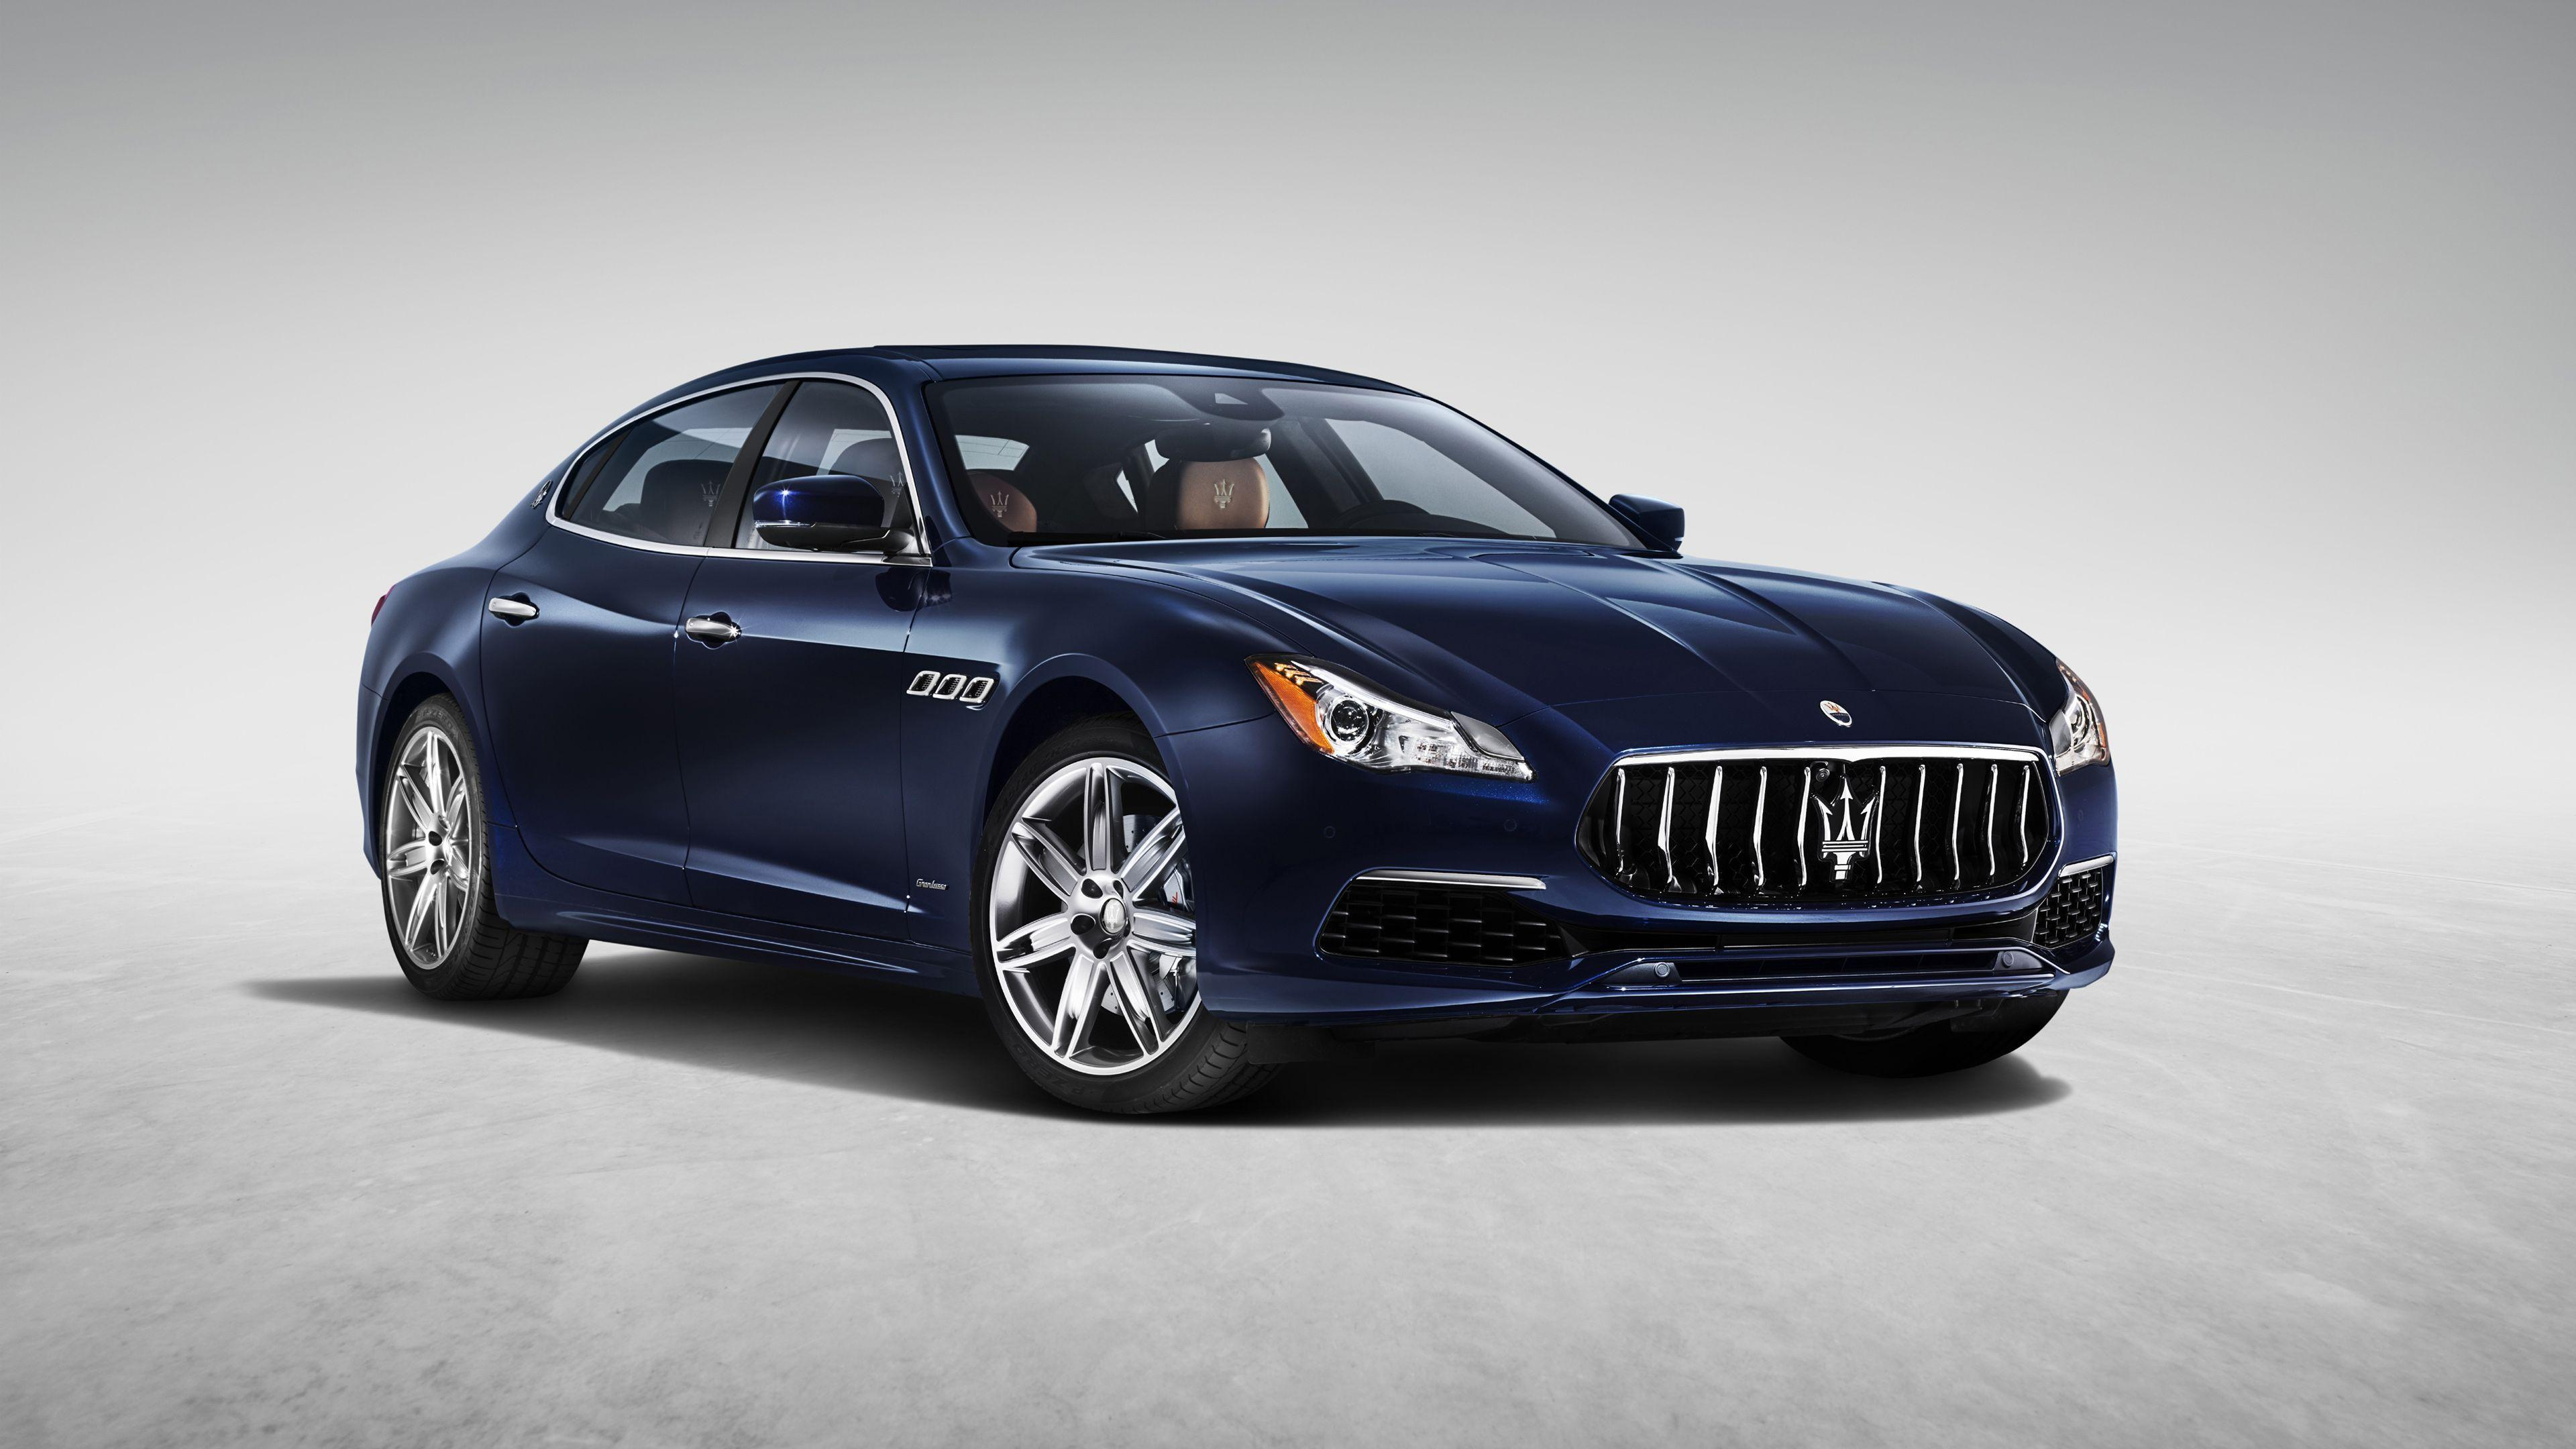 Maserati Car Wallpapers - Page 1 - HD Car Wallpapers